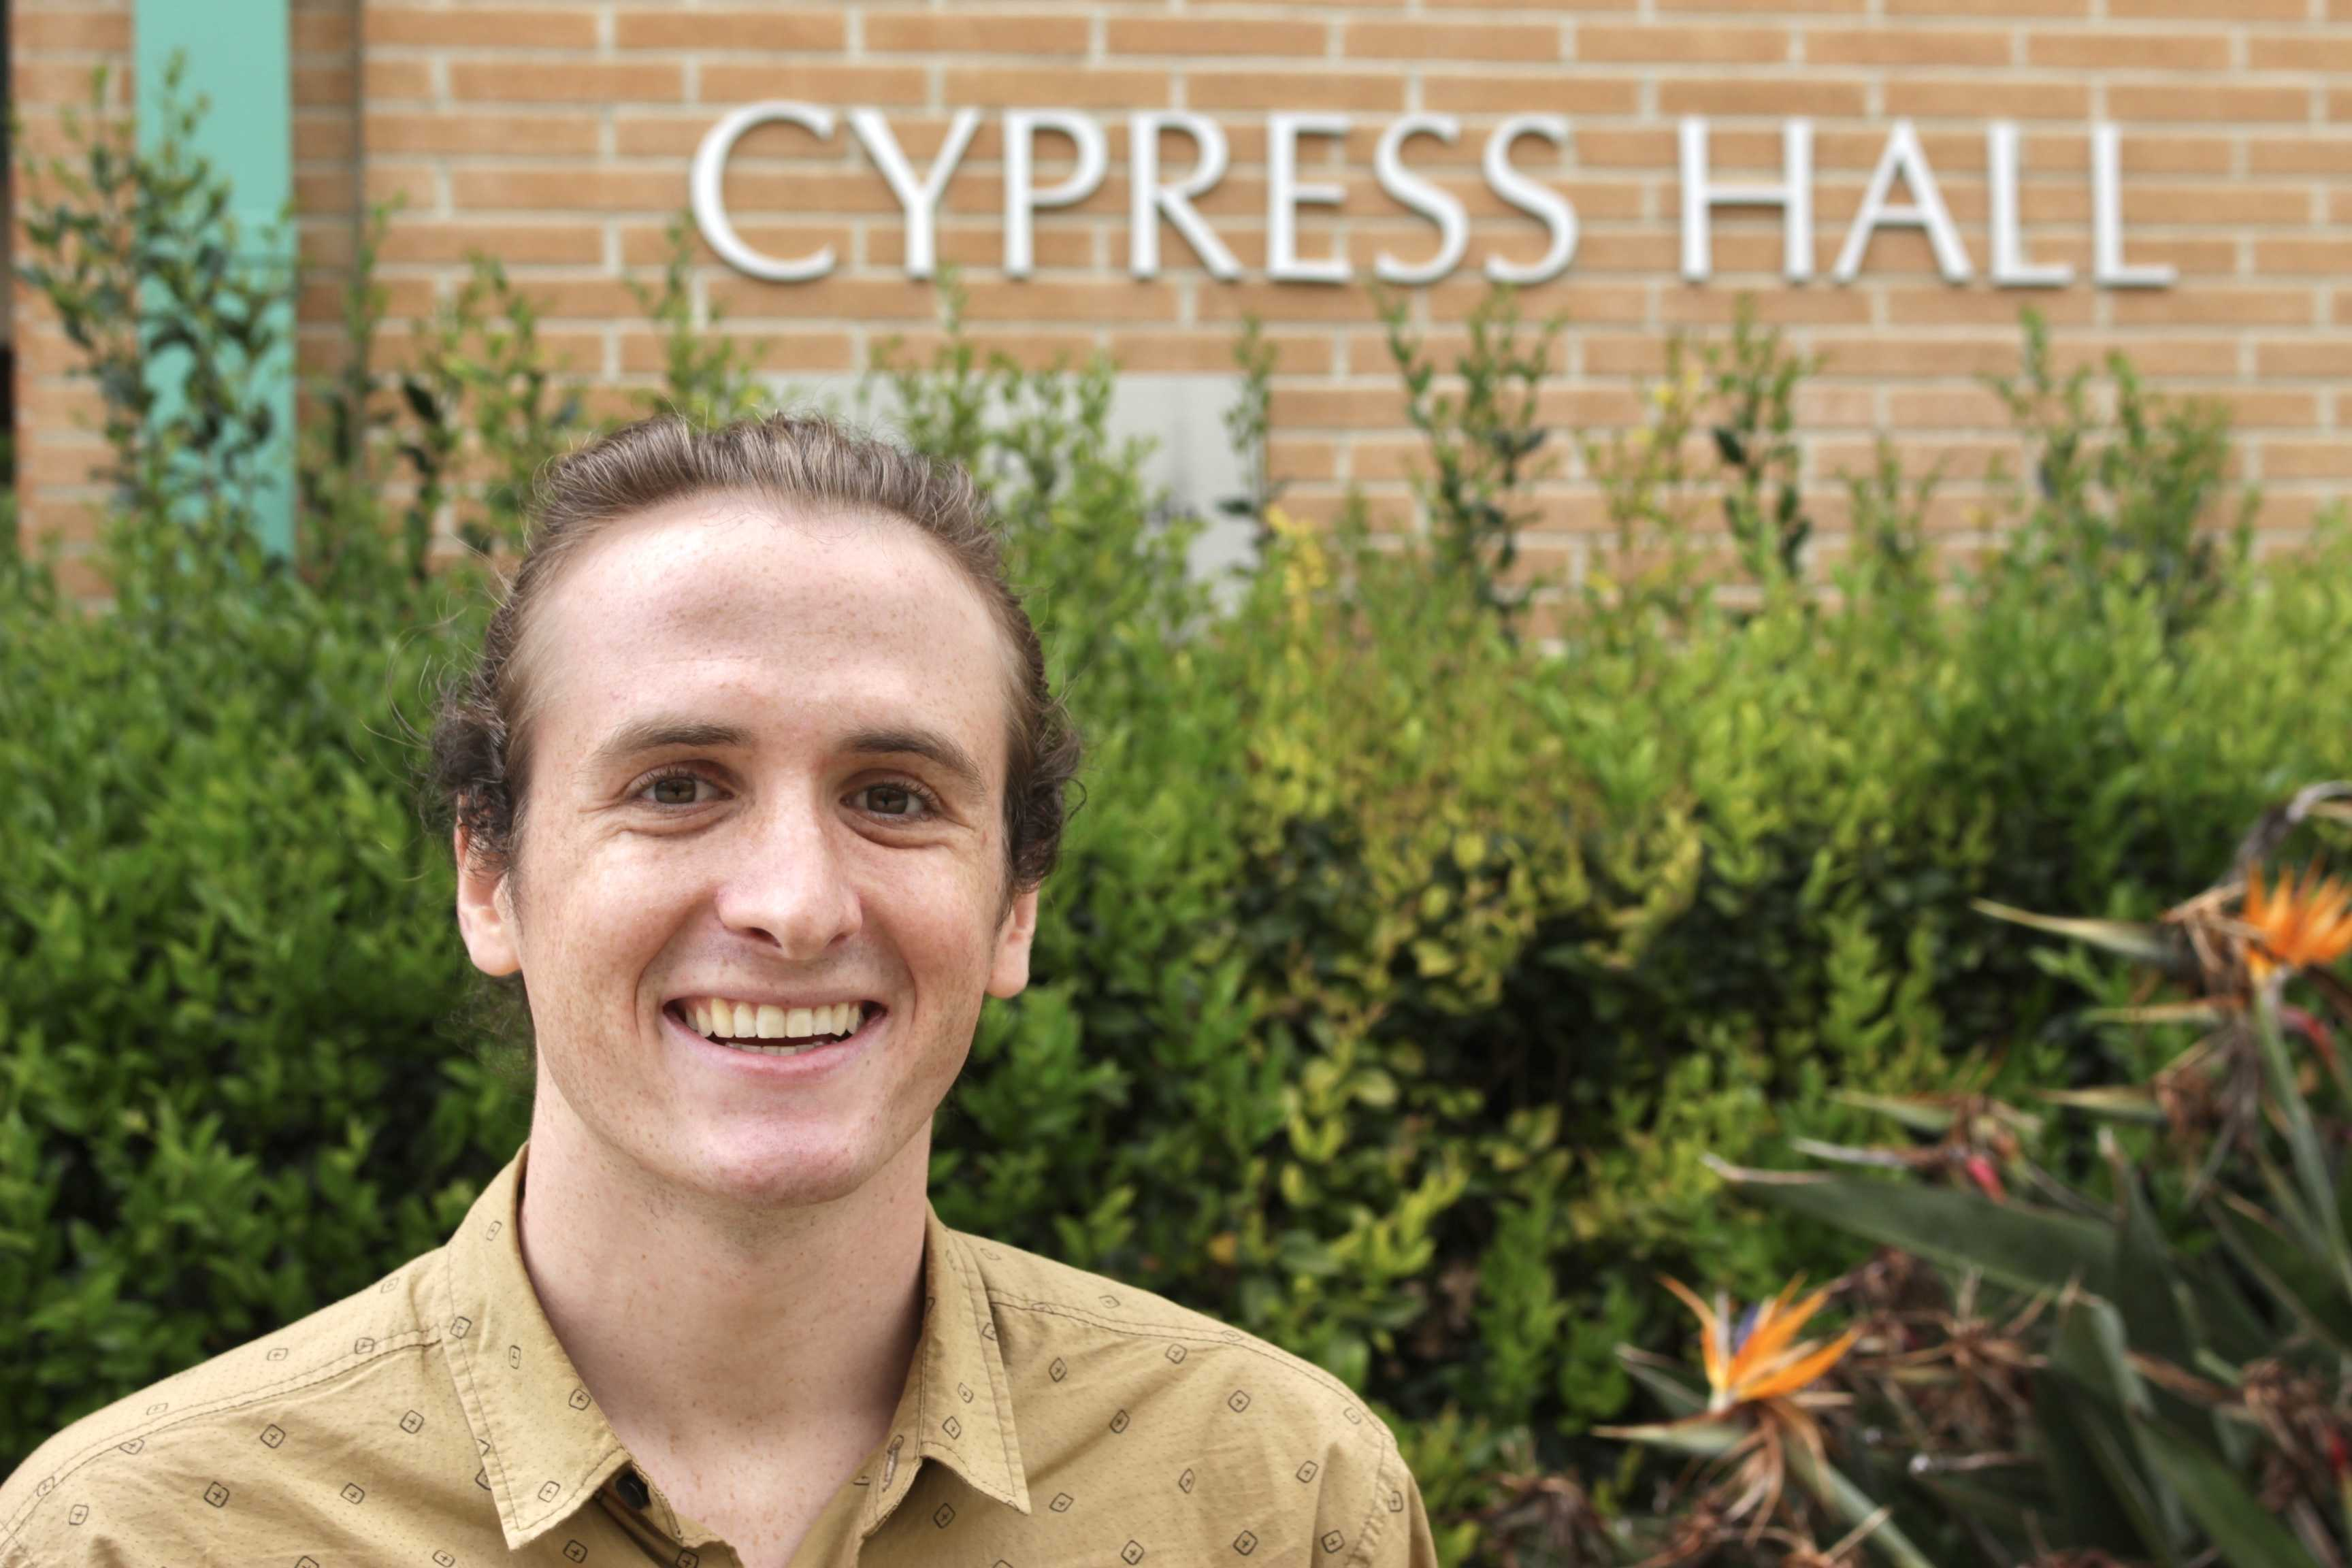 Meet Royal Dean, 22, who transferred to CSUN in spring of 2017 to work on his dreams of becoming a music composer for film. Photo credit: Chelsea Hays